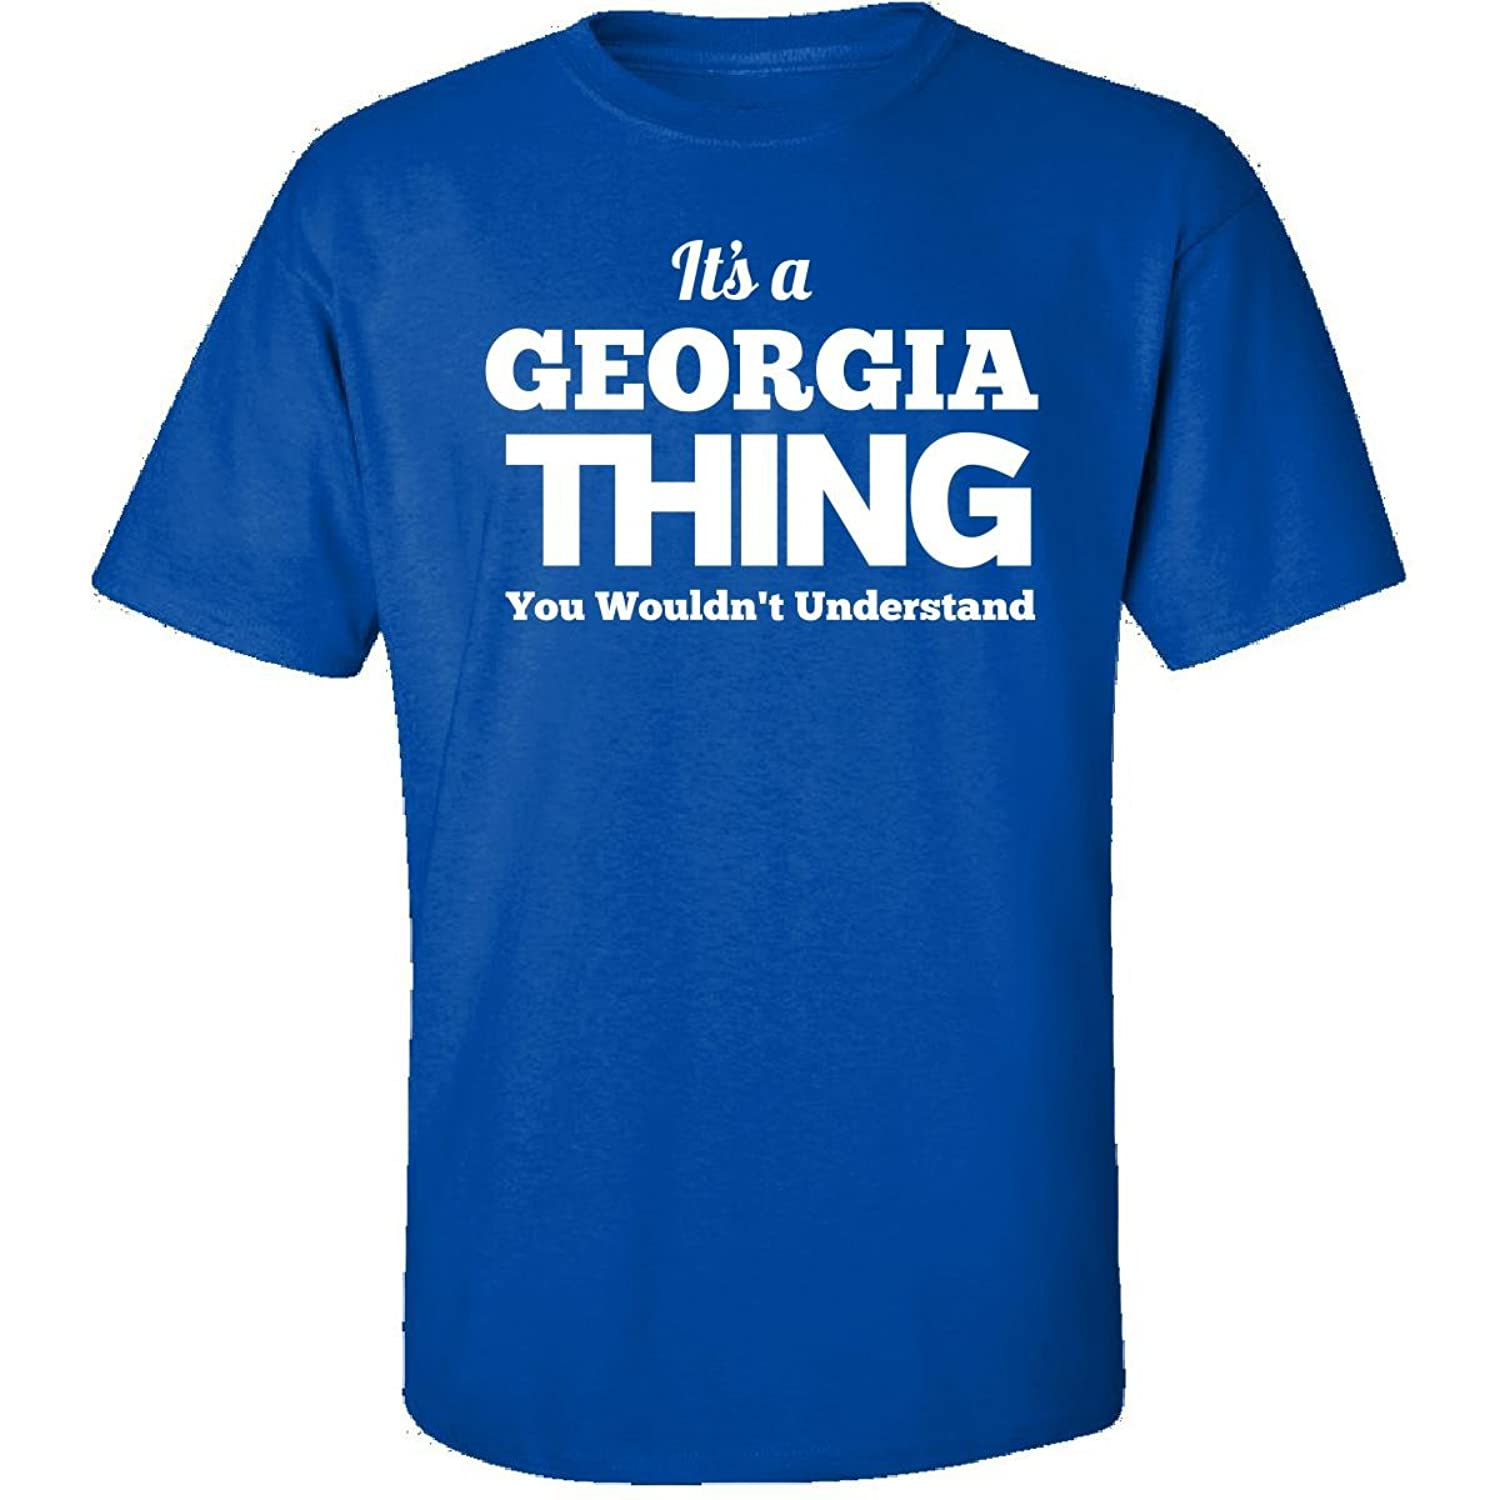 Its A Georgia Thing You Wouldnt Understand - Adult Shirt